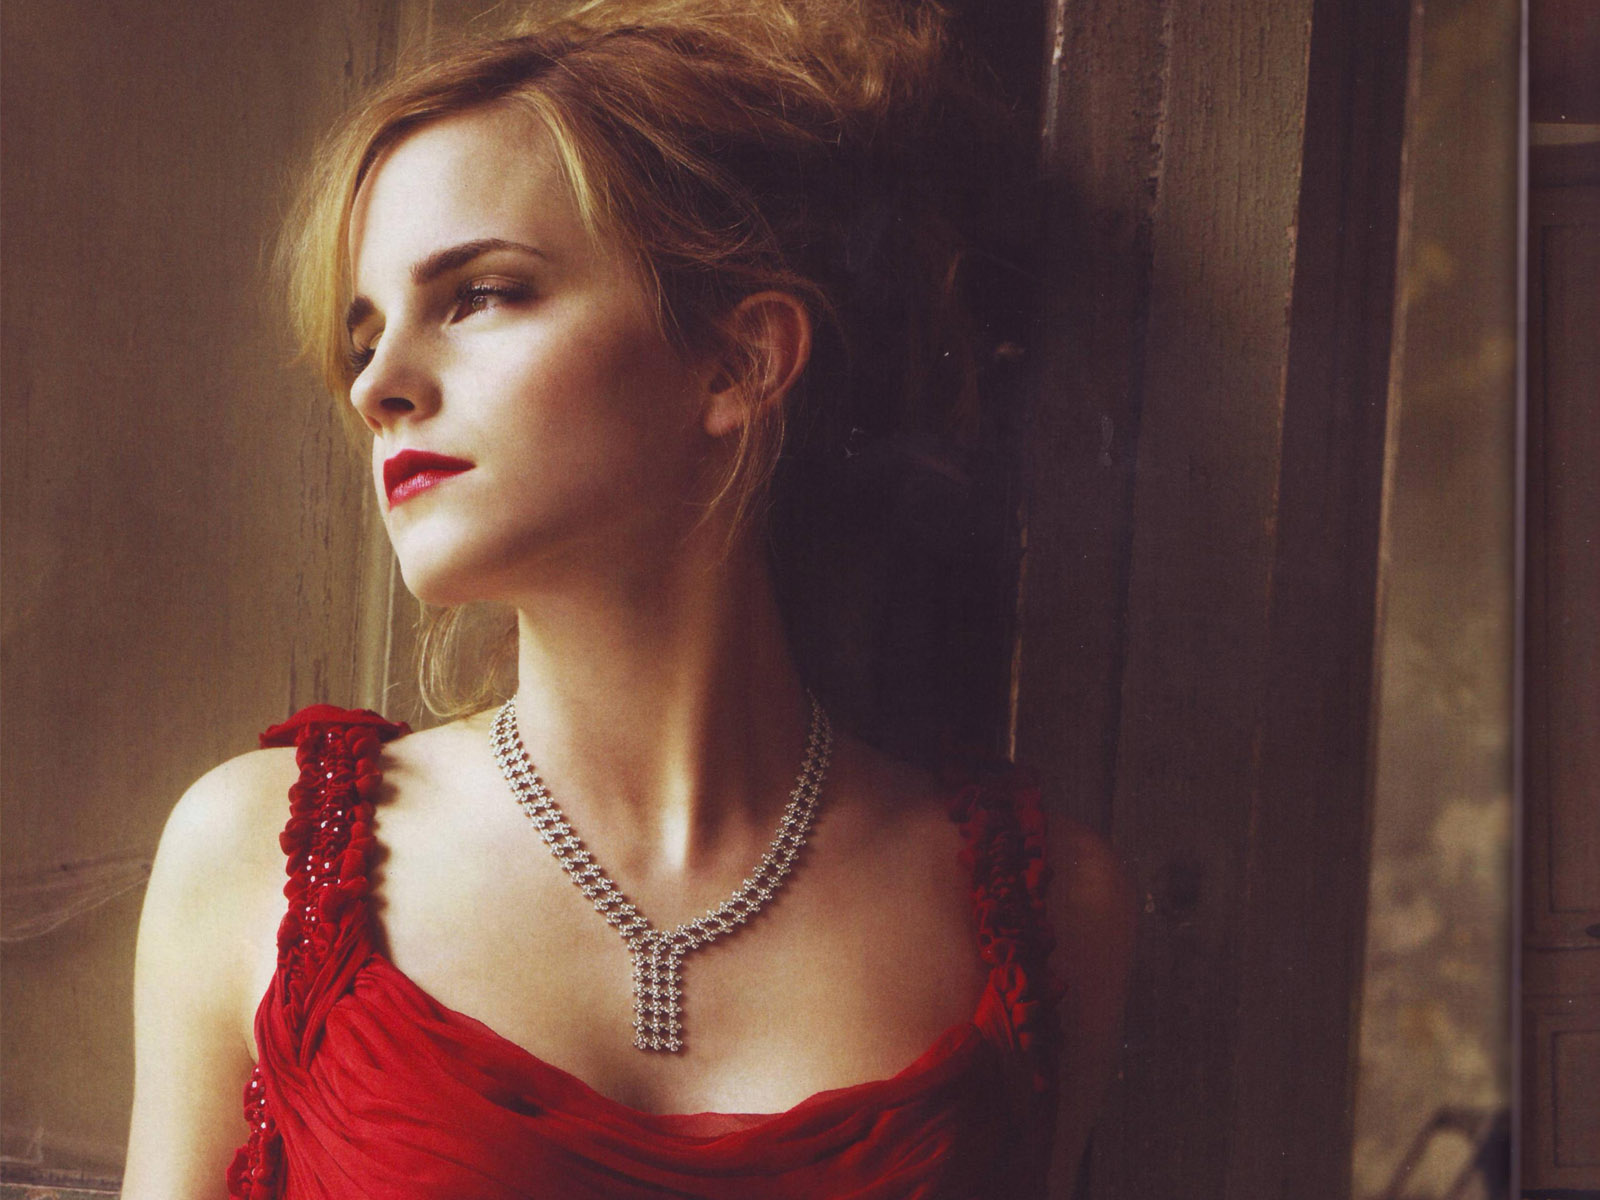 emma watson hd hot - photo #1